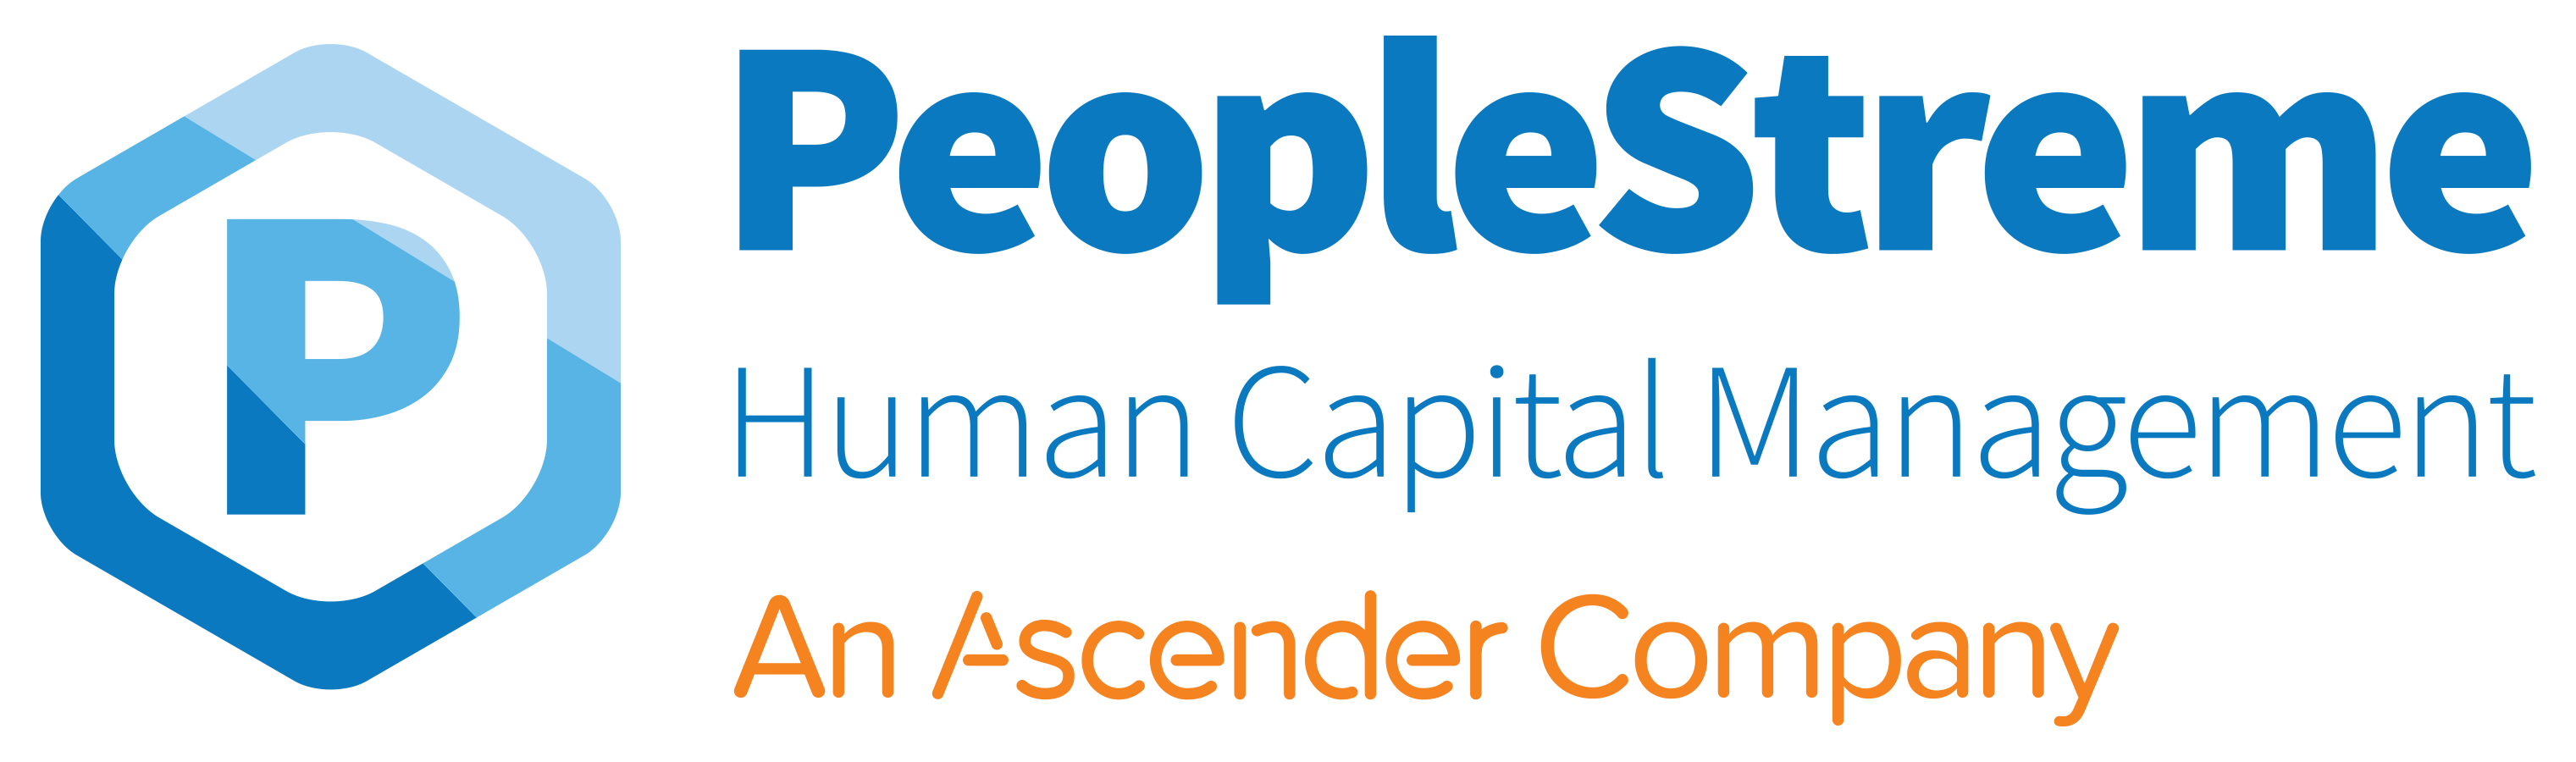 PeopleStreme Human Capital Management logo